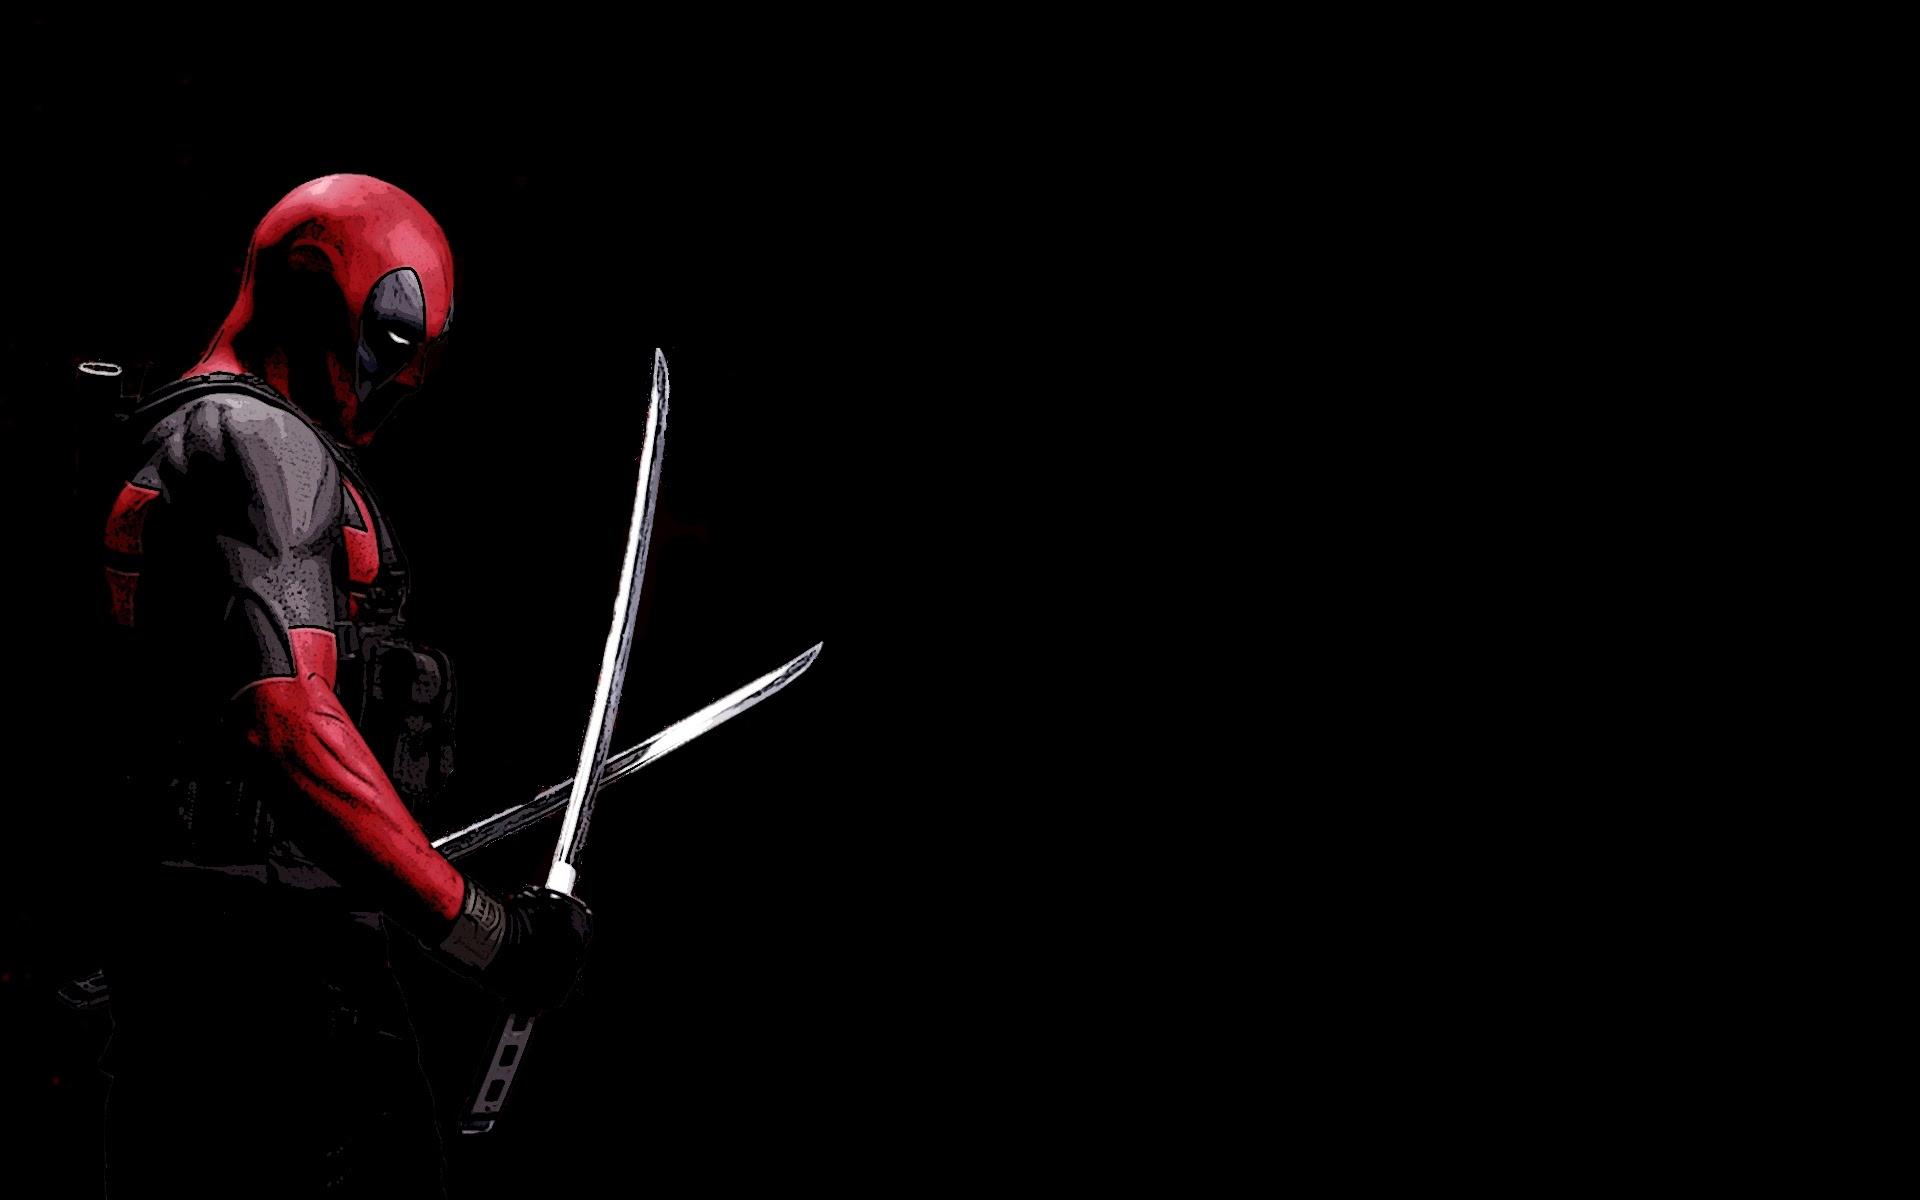 Deadpool Black Background Katana Marvel Comics HD Wallpaper 19201200 1920x1200